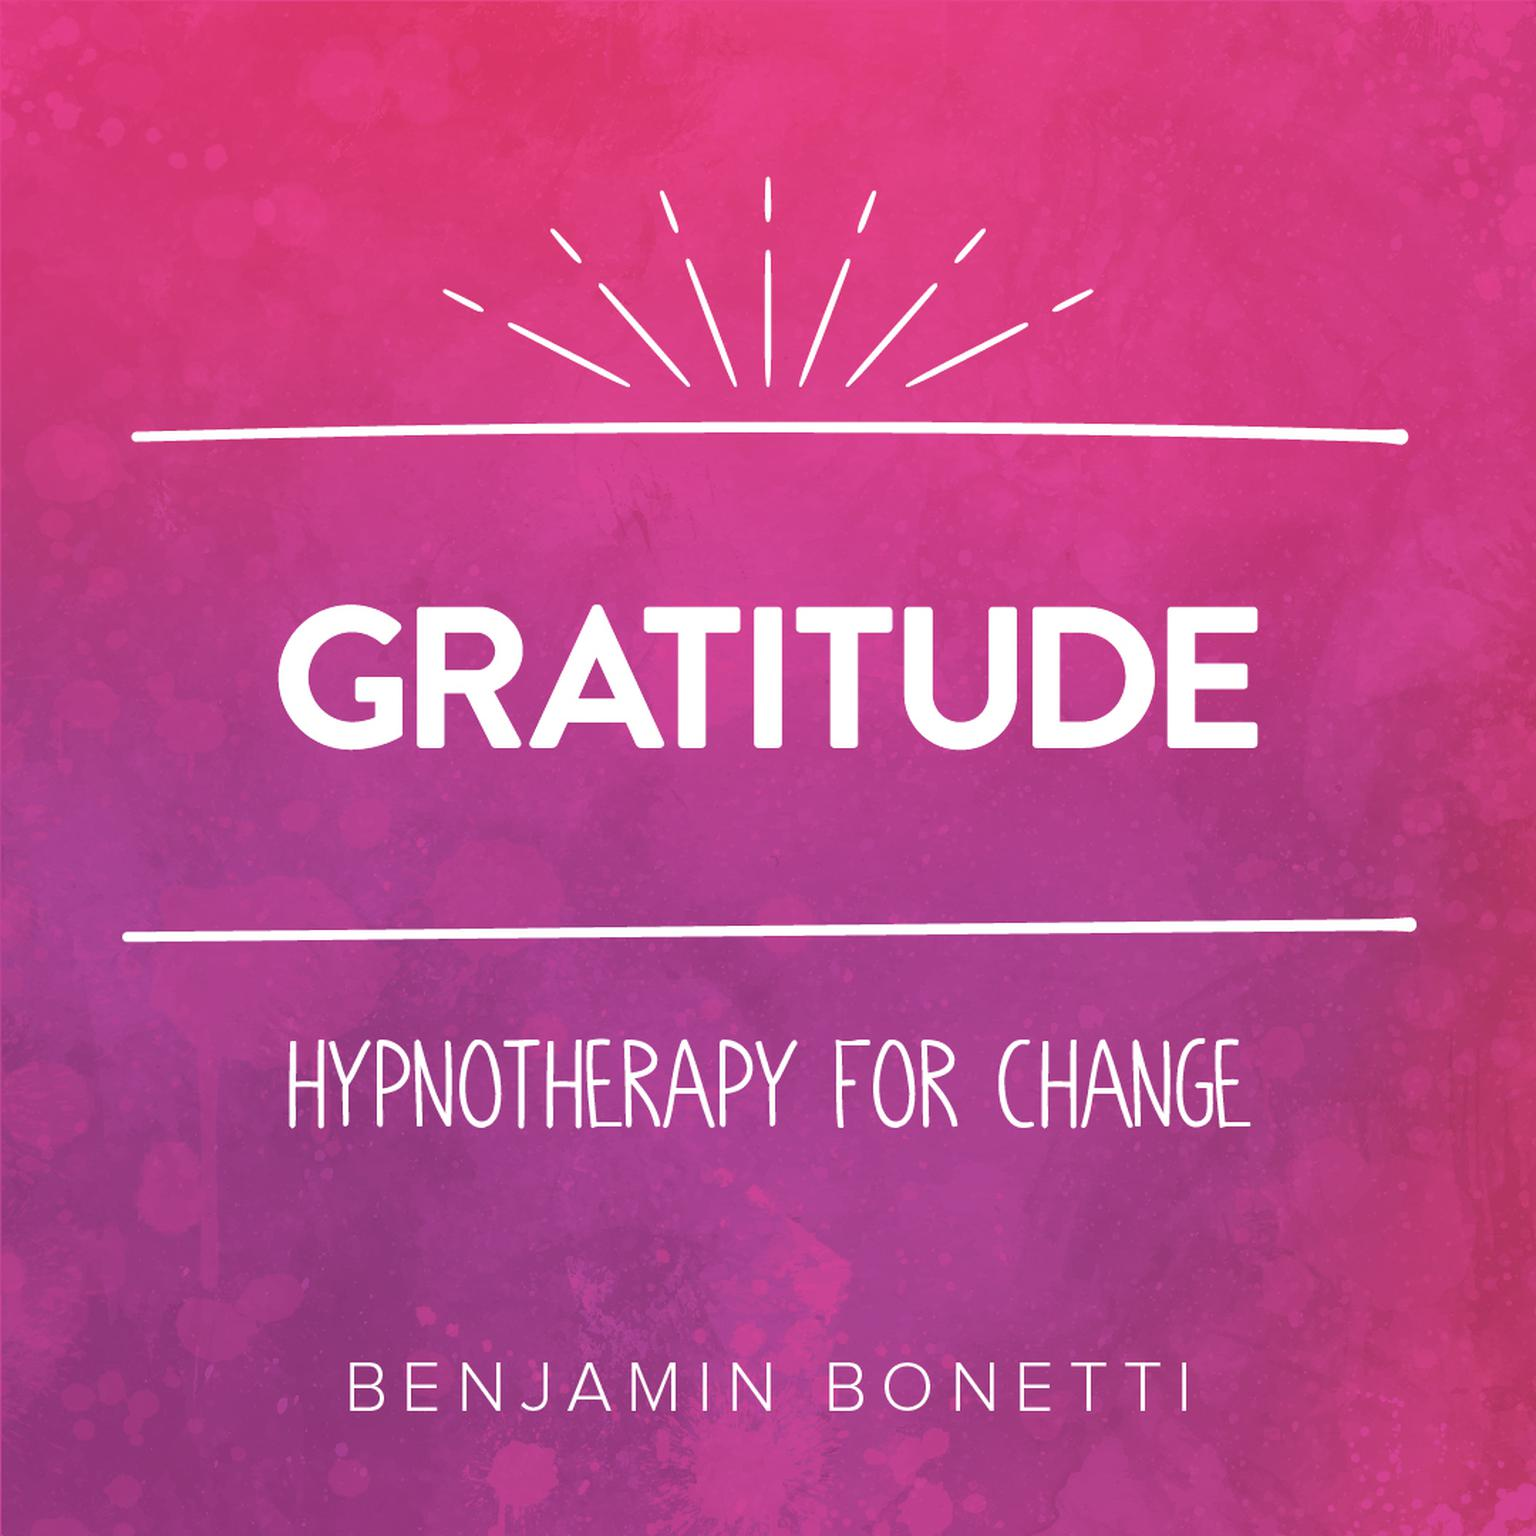 Printable Gratitude—Hypnotherapy For Change Audiobook Cover Art